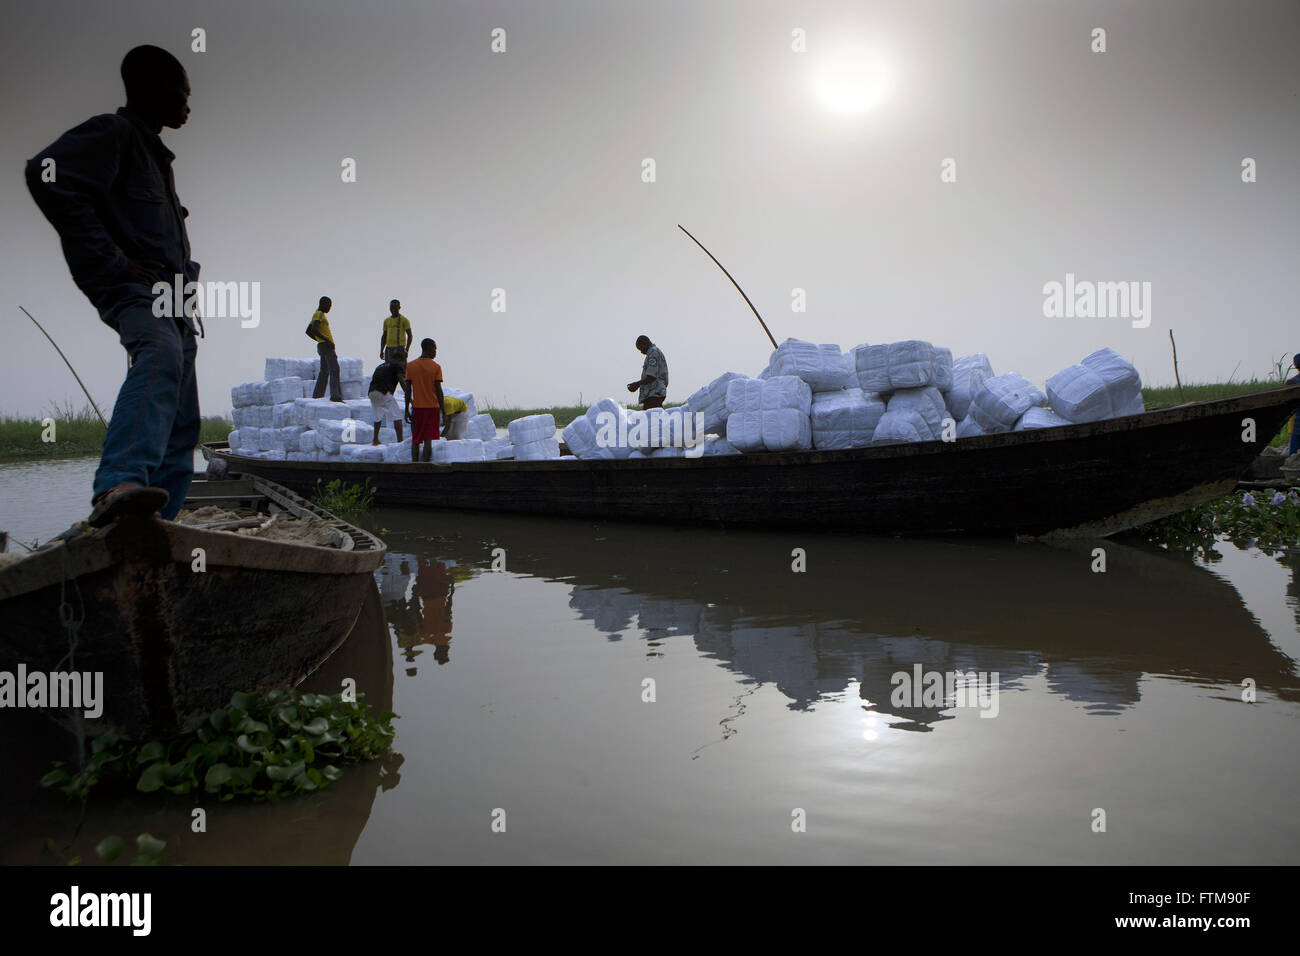 Transportation clothing UN humanitarian aid to the village of So Ava located on Lake Nokue - Stock Image